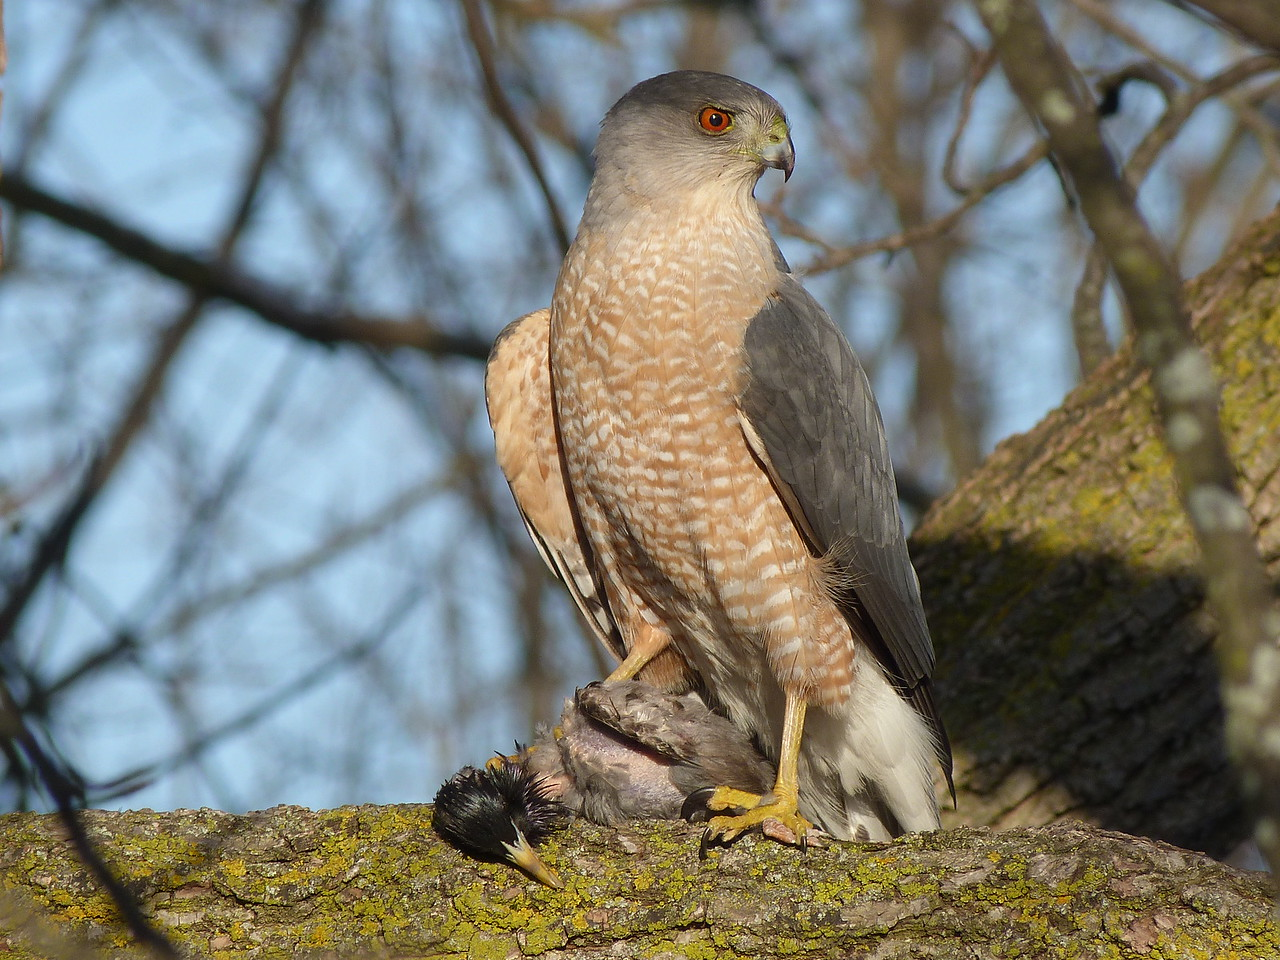 Cooper's hawk by Andrea Chappell